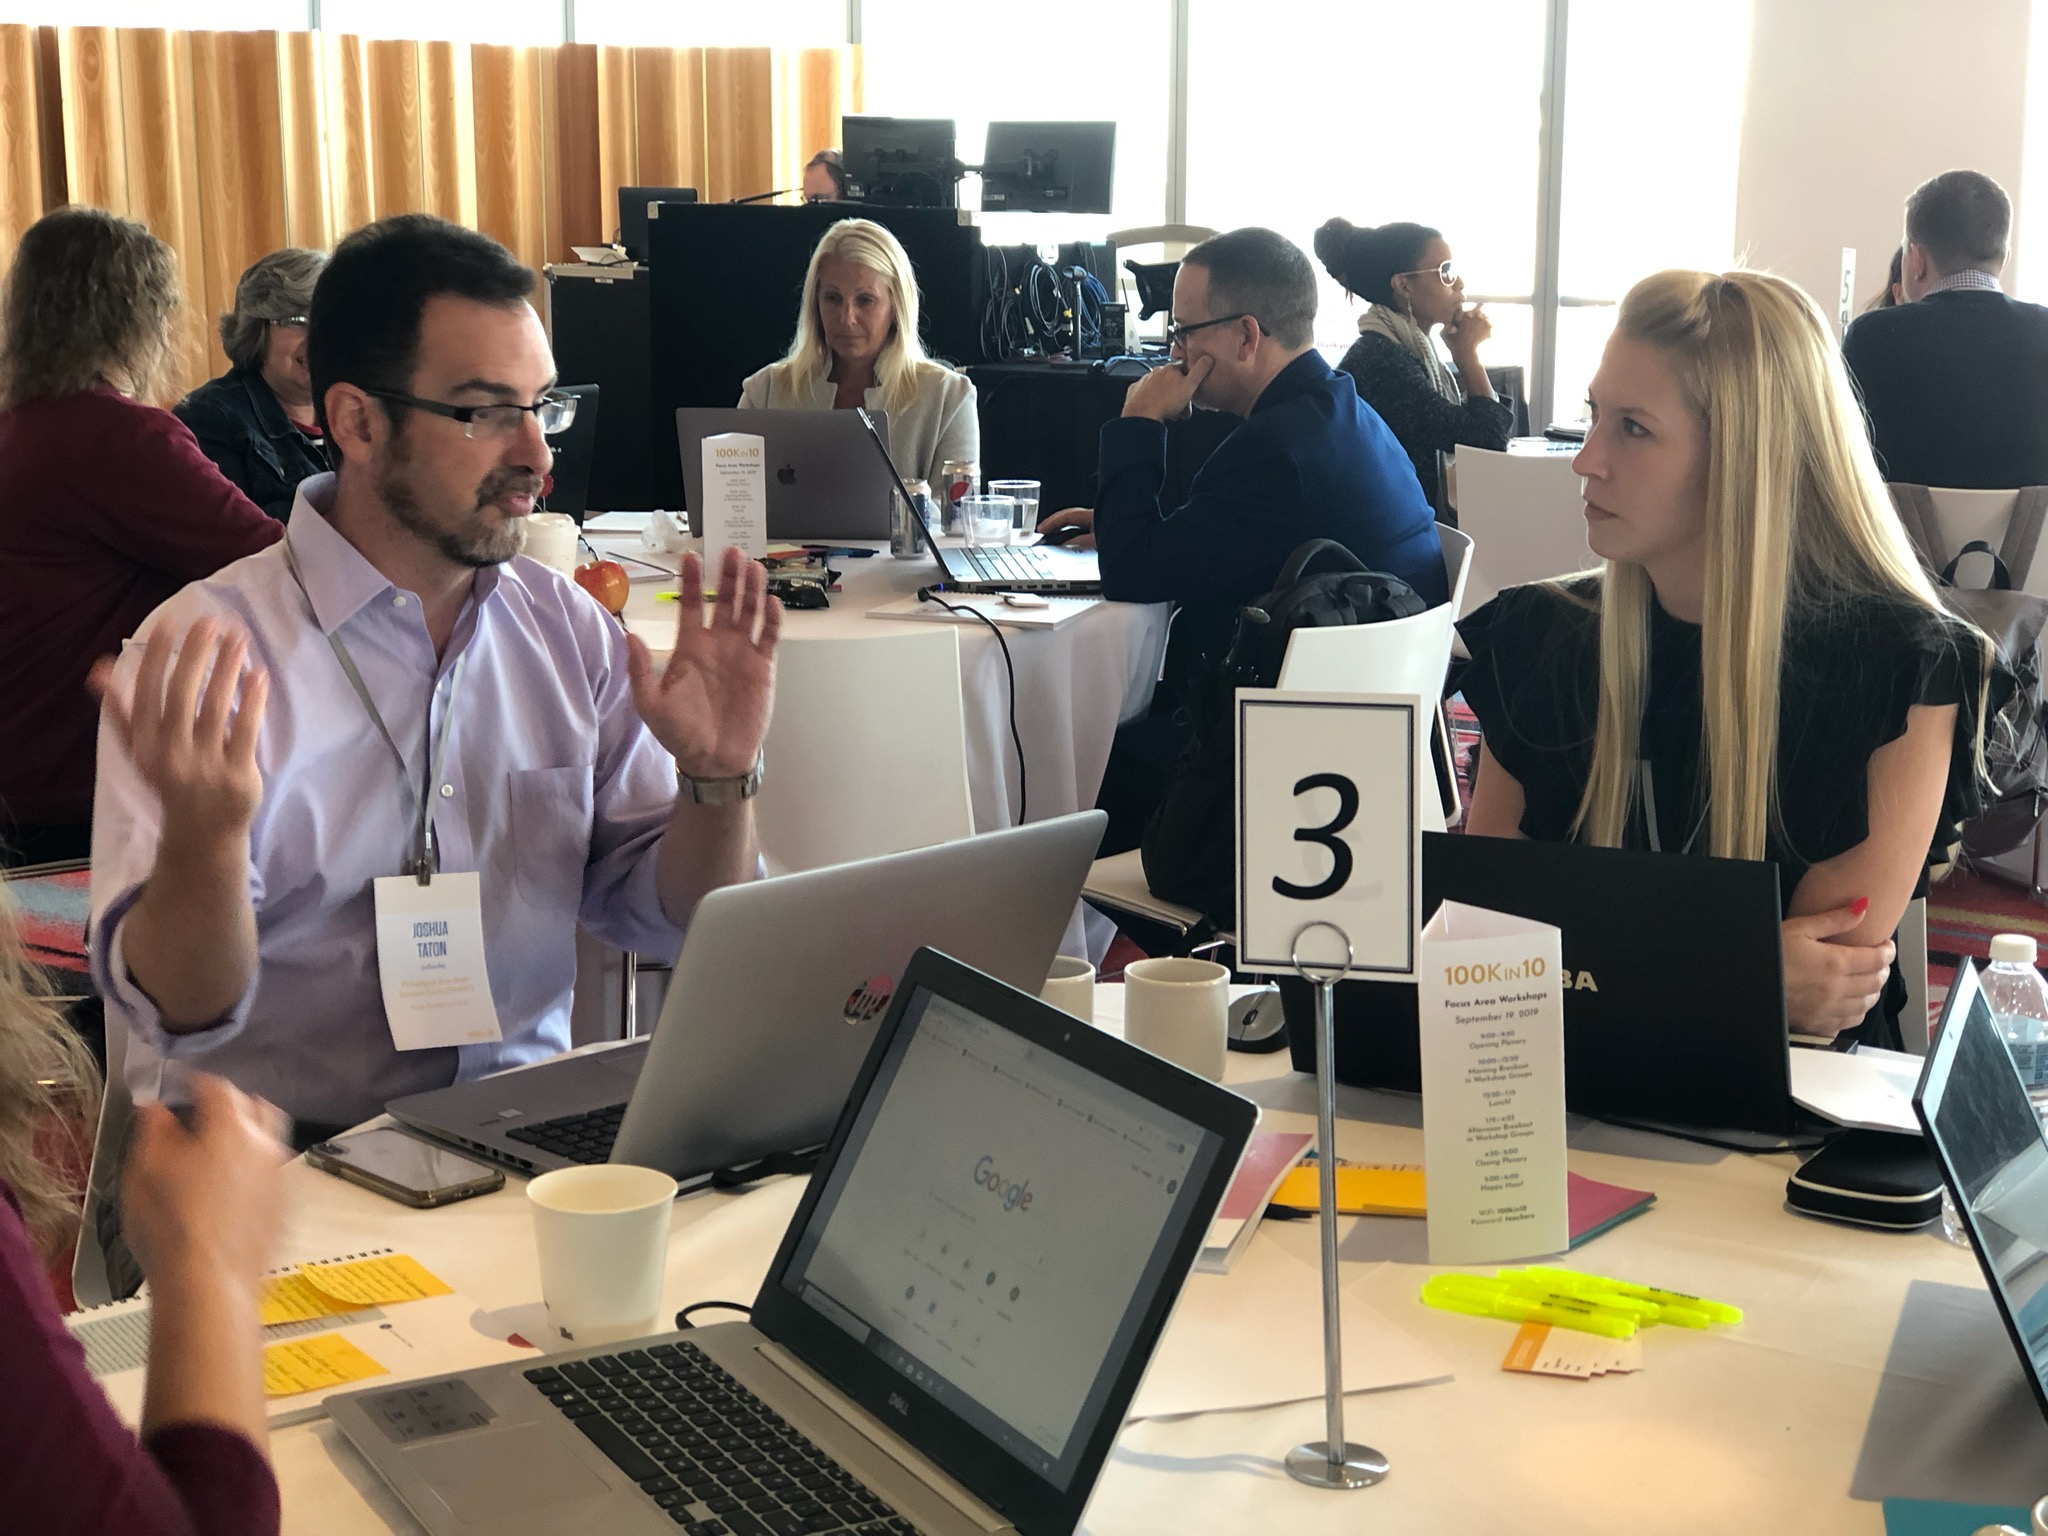 Lindsay M. Anderson of ASSET in discussion with a group of math educators at a table during recent 100kin10 gathering in NYC